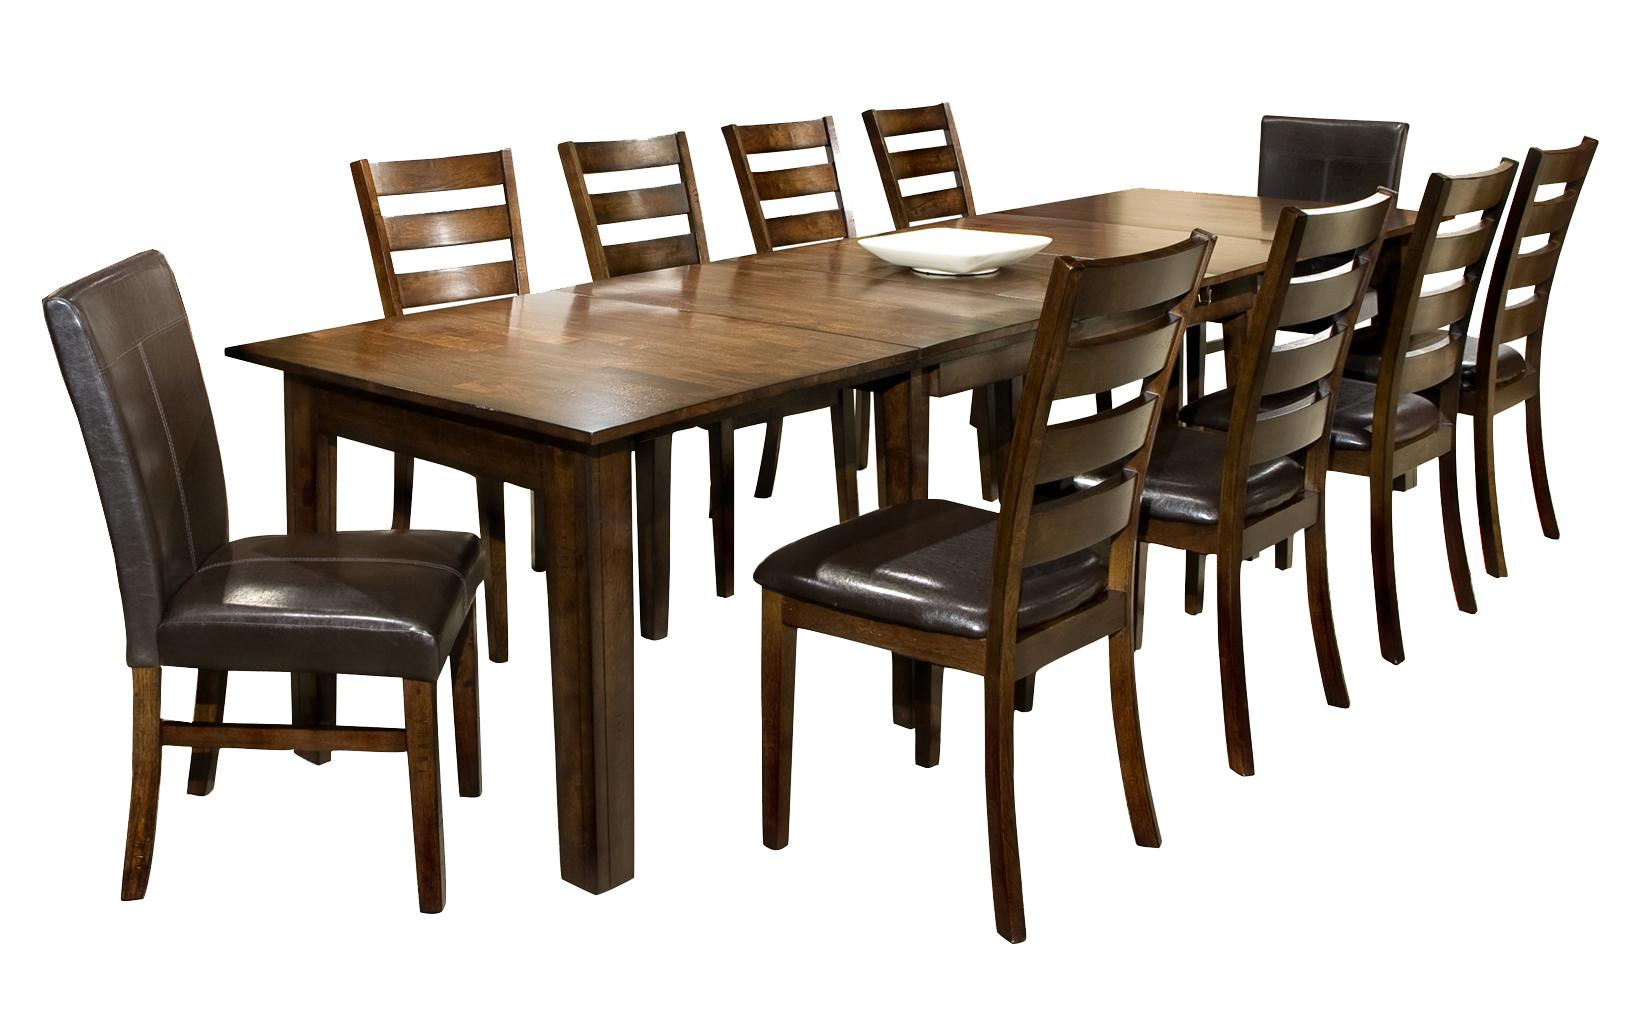 11-Piece Dining Set with Table and Chairs by Intercon | Wolf and ...